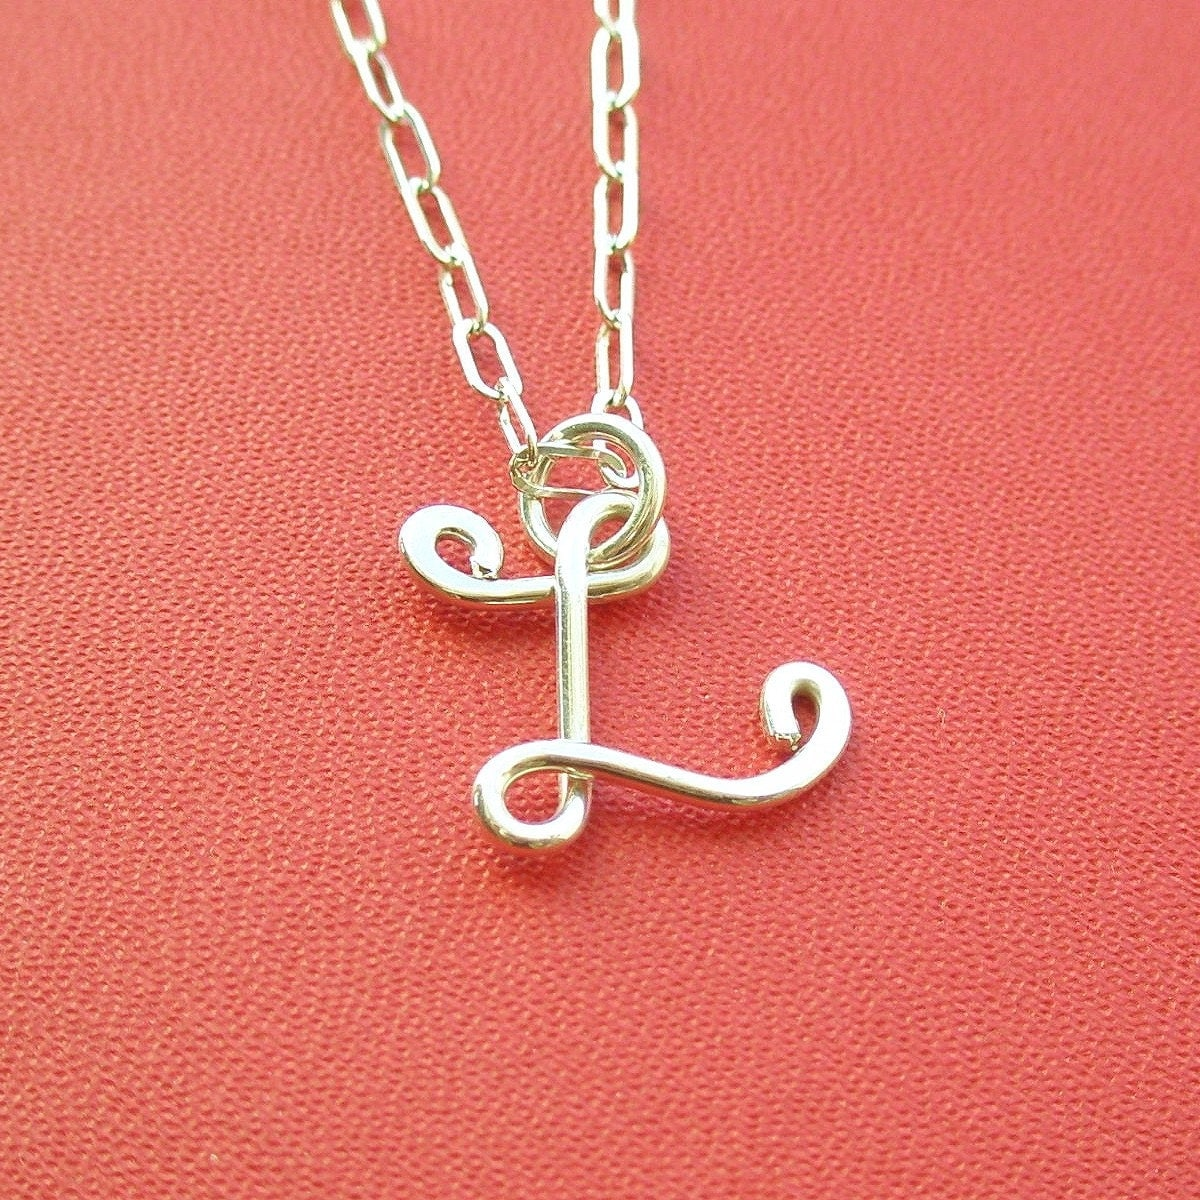 small letter l necklace all sterling silver zoom